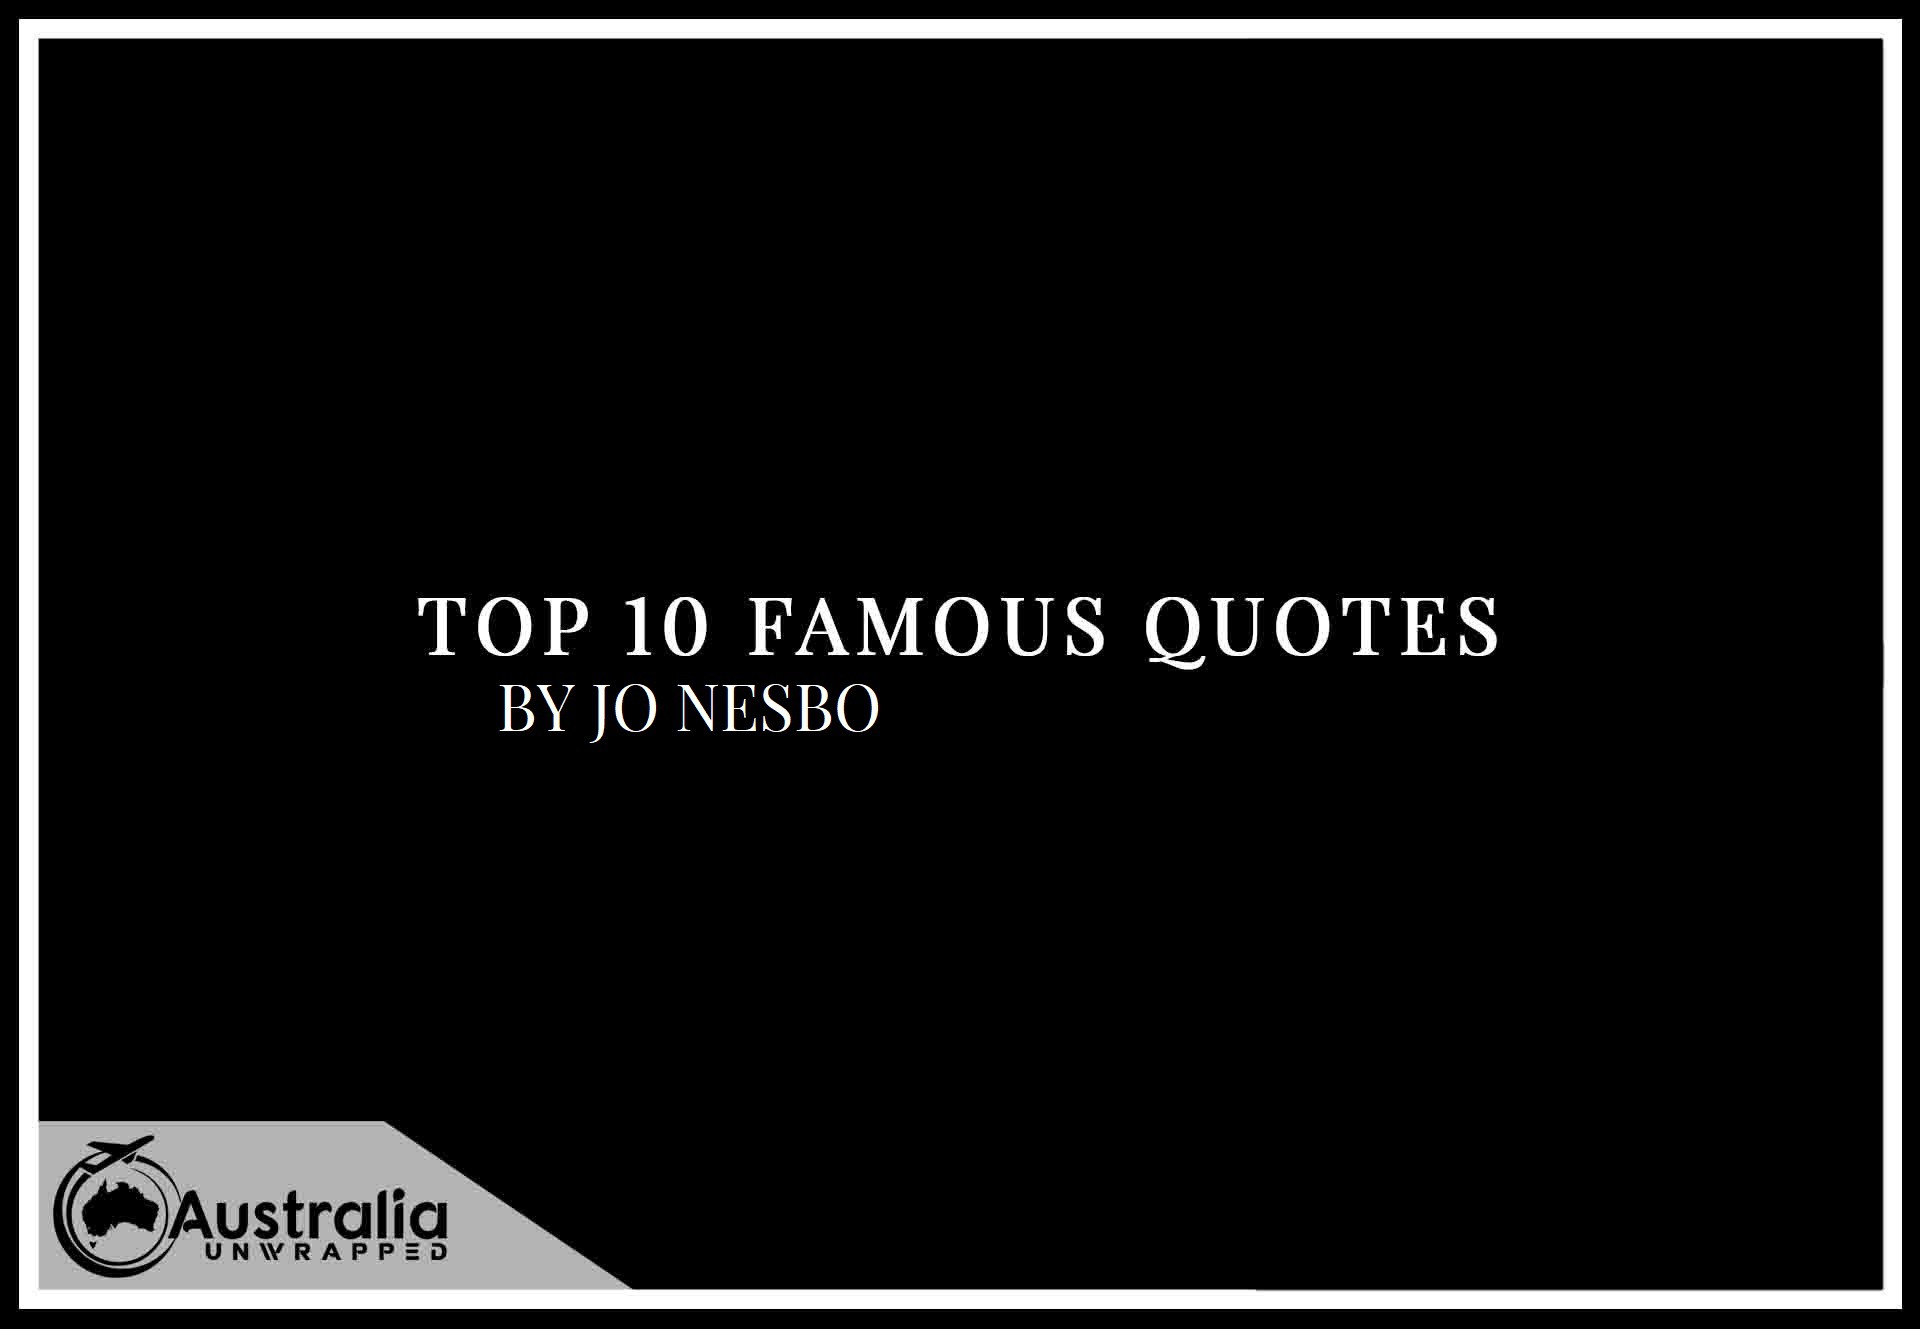 Top 10 Famous Quotes by Author Jo Nesbo